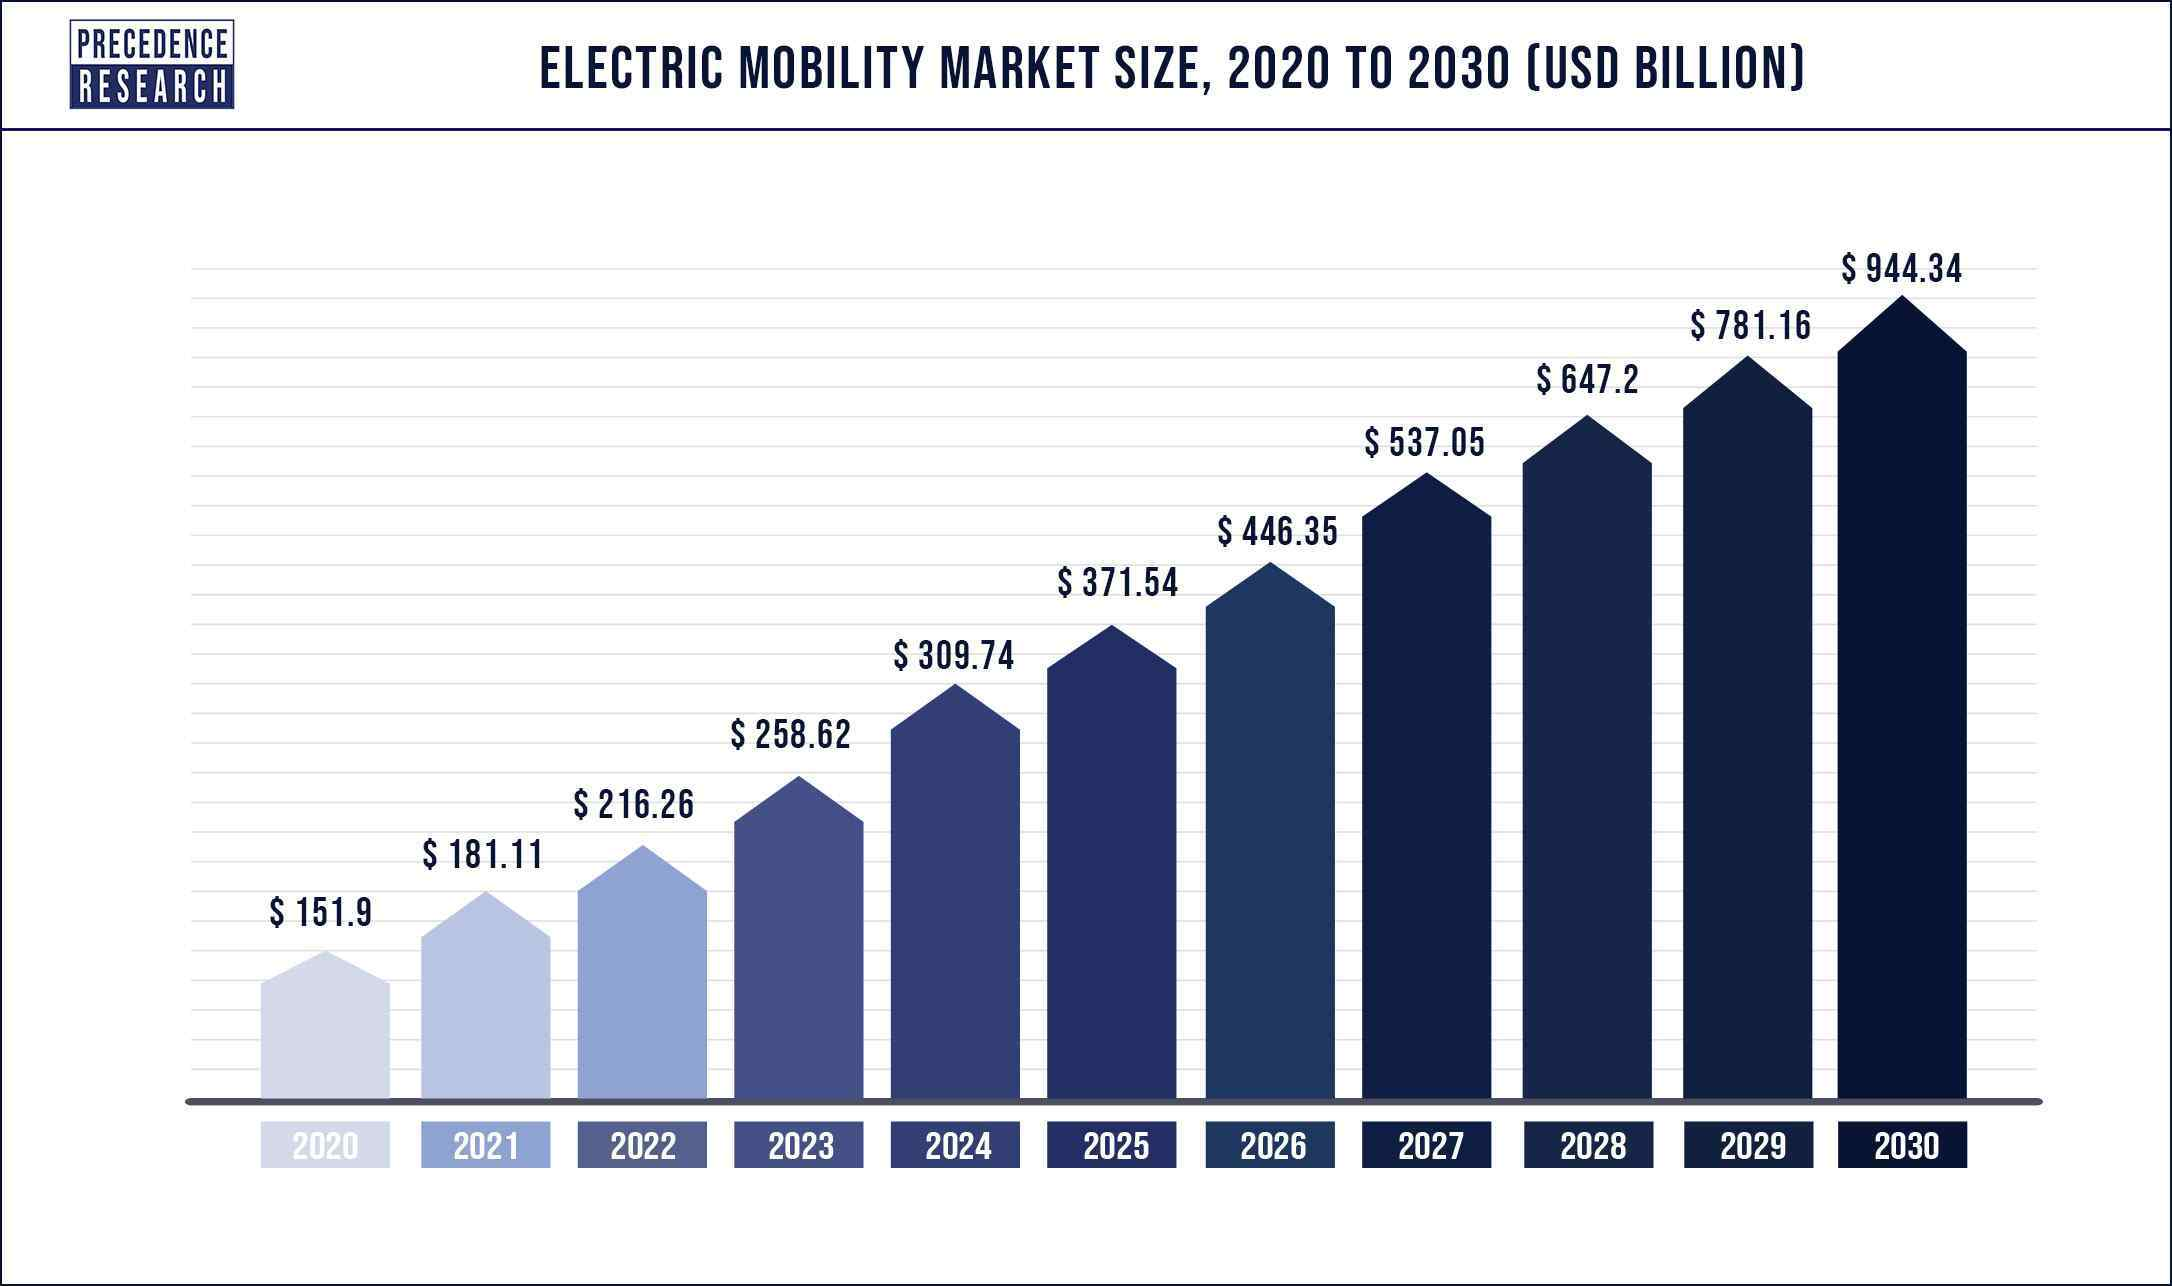 Electric Mobility Market Size 2020 to 2030